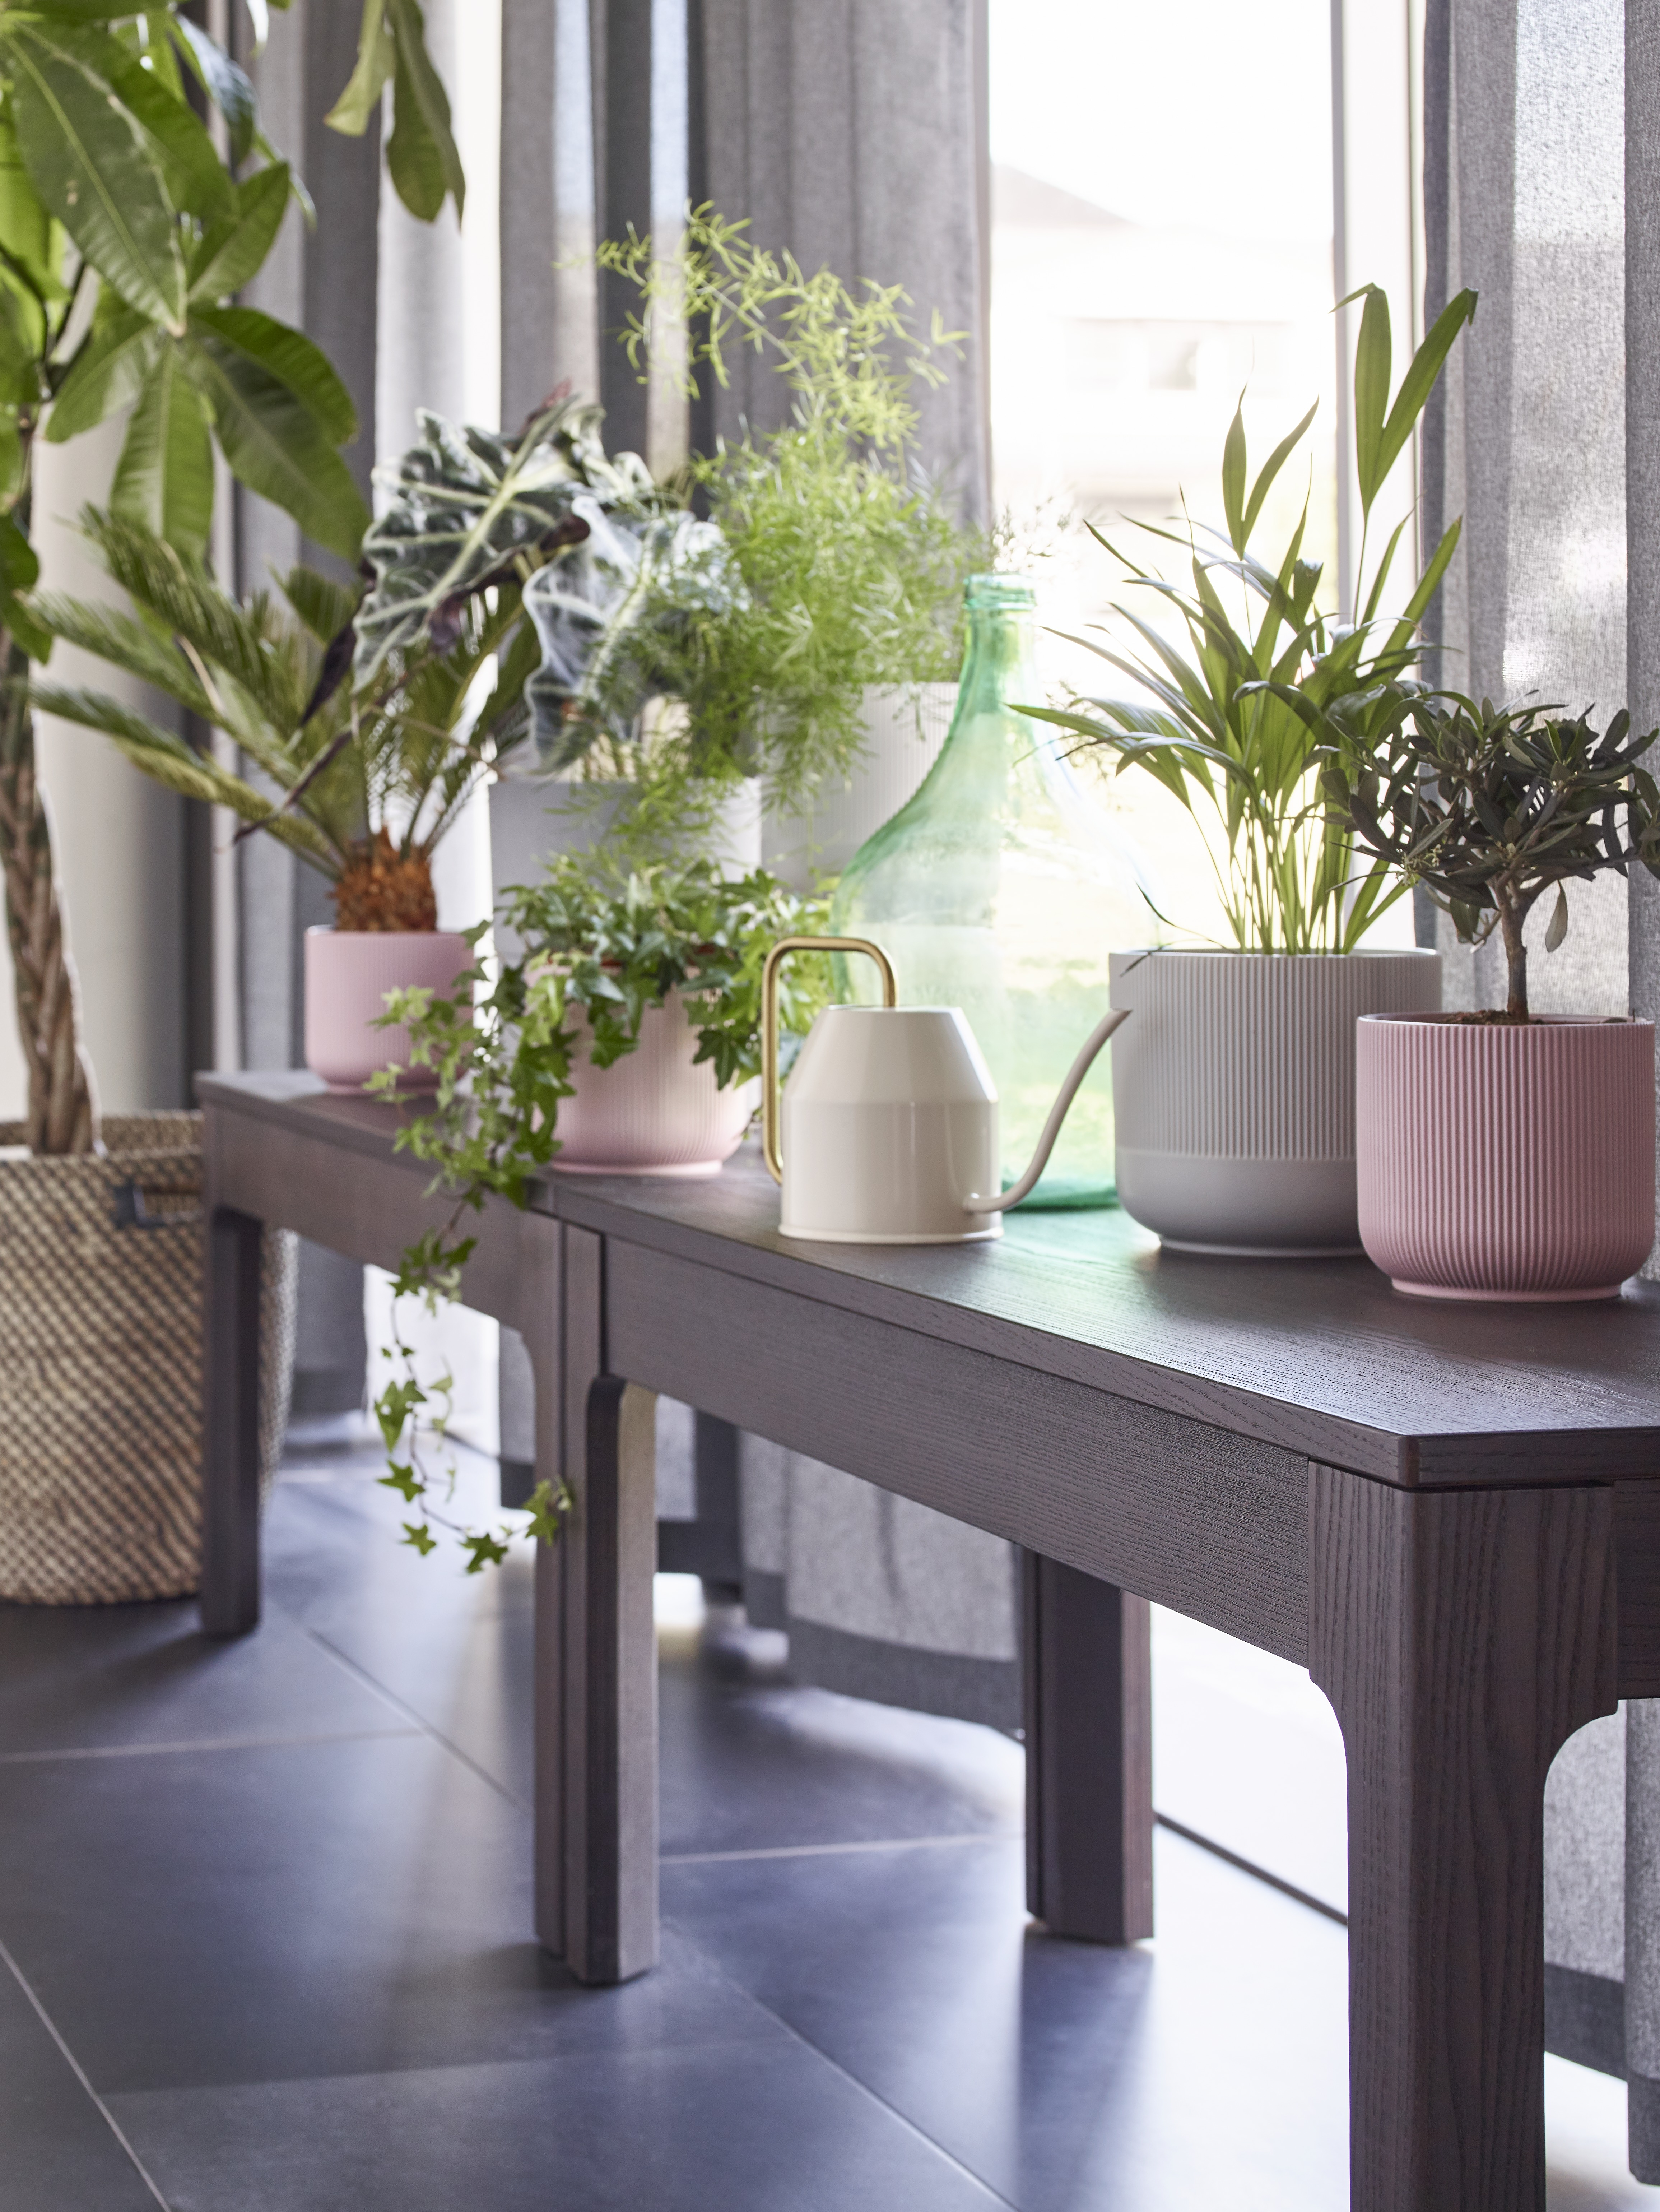 Two dark brown EKEDALEN benches are side-by-side on a tiled floor, holding various potted plants by a big window.